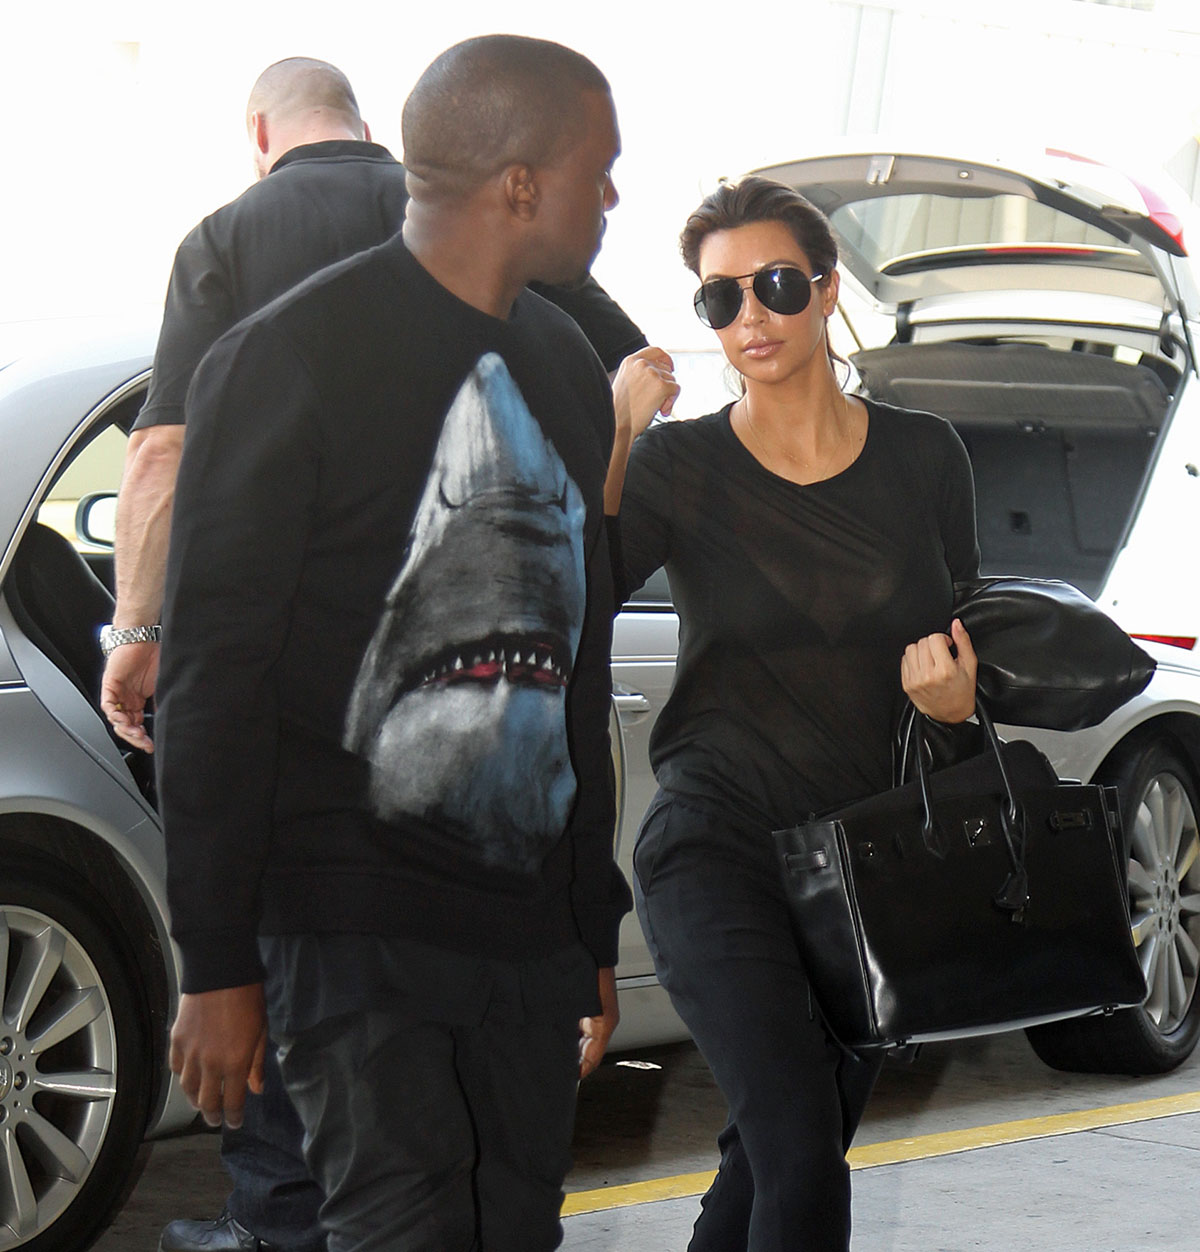 Kim kardashian and kanye west at jfk airport in new york